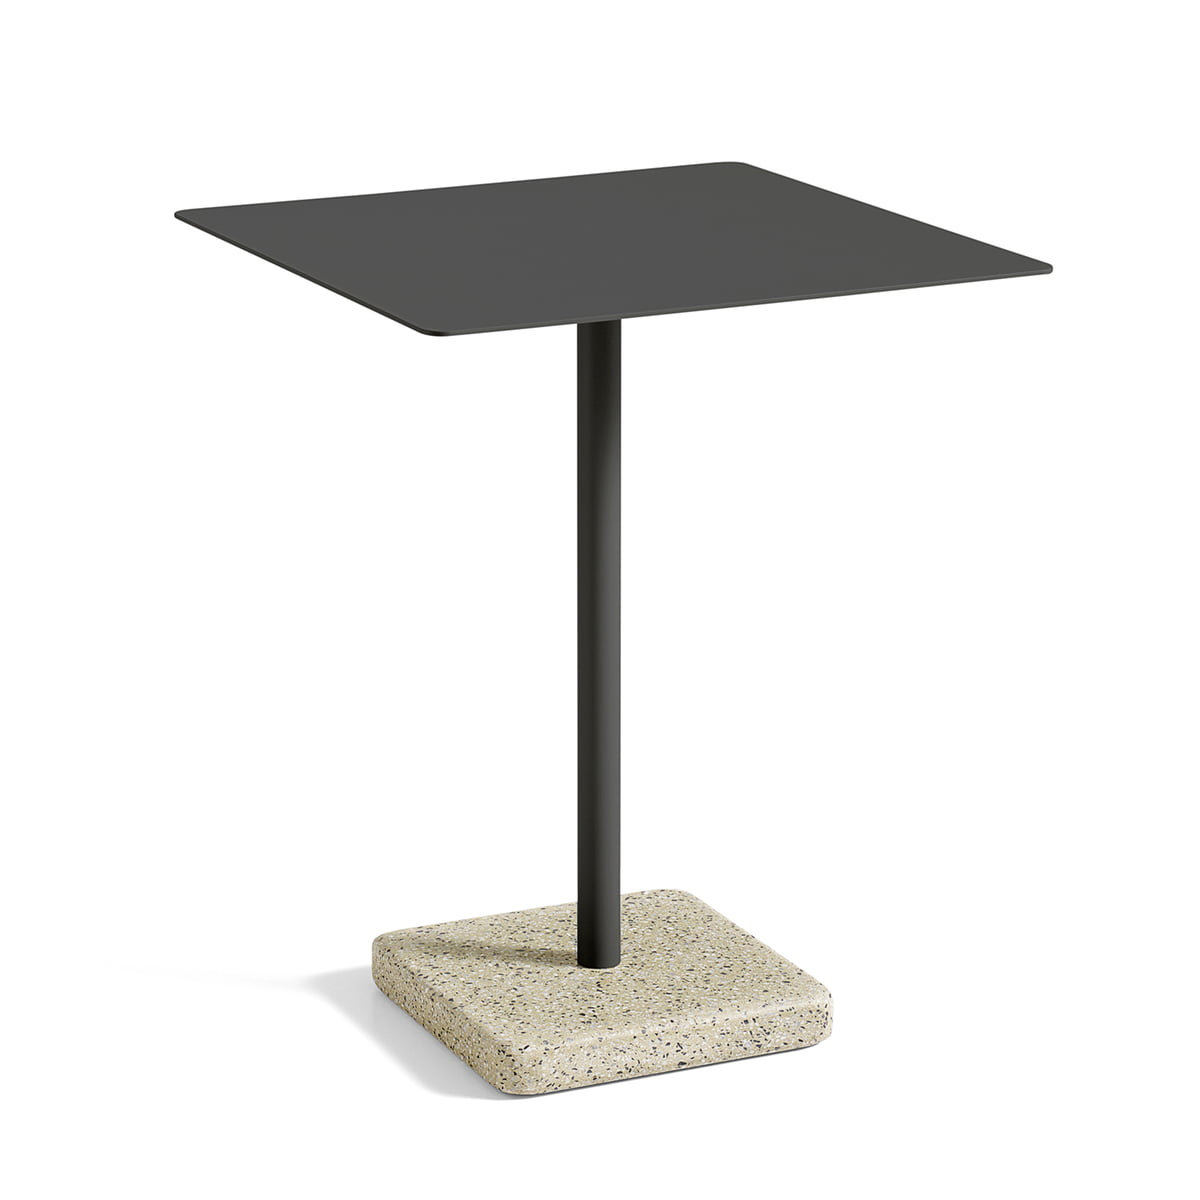 terrazzo table square by hay in the shop. Black Bedroom Furniture Sets. Home Design Ideas